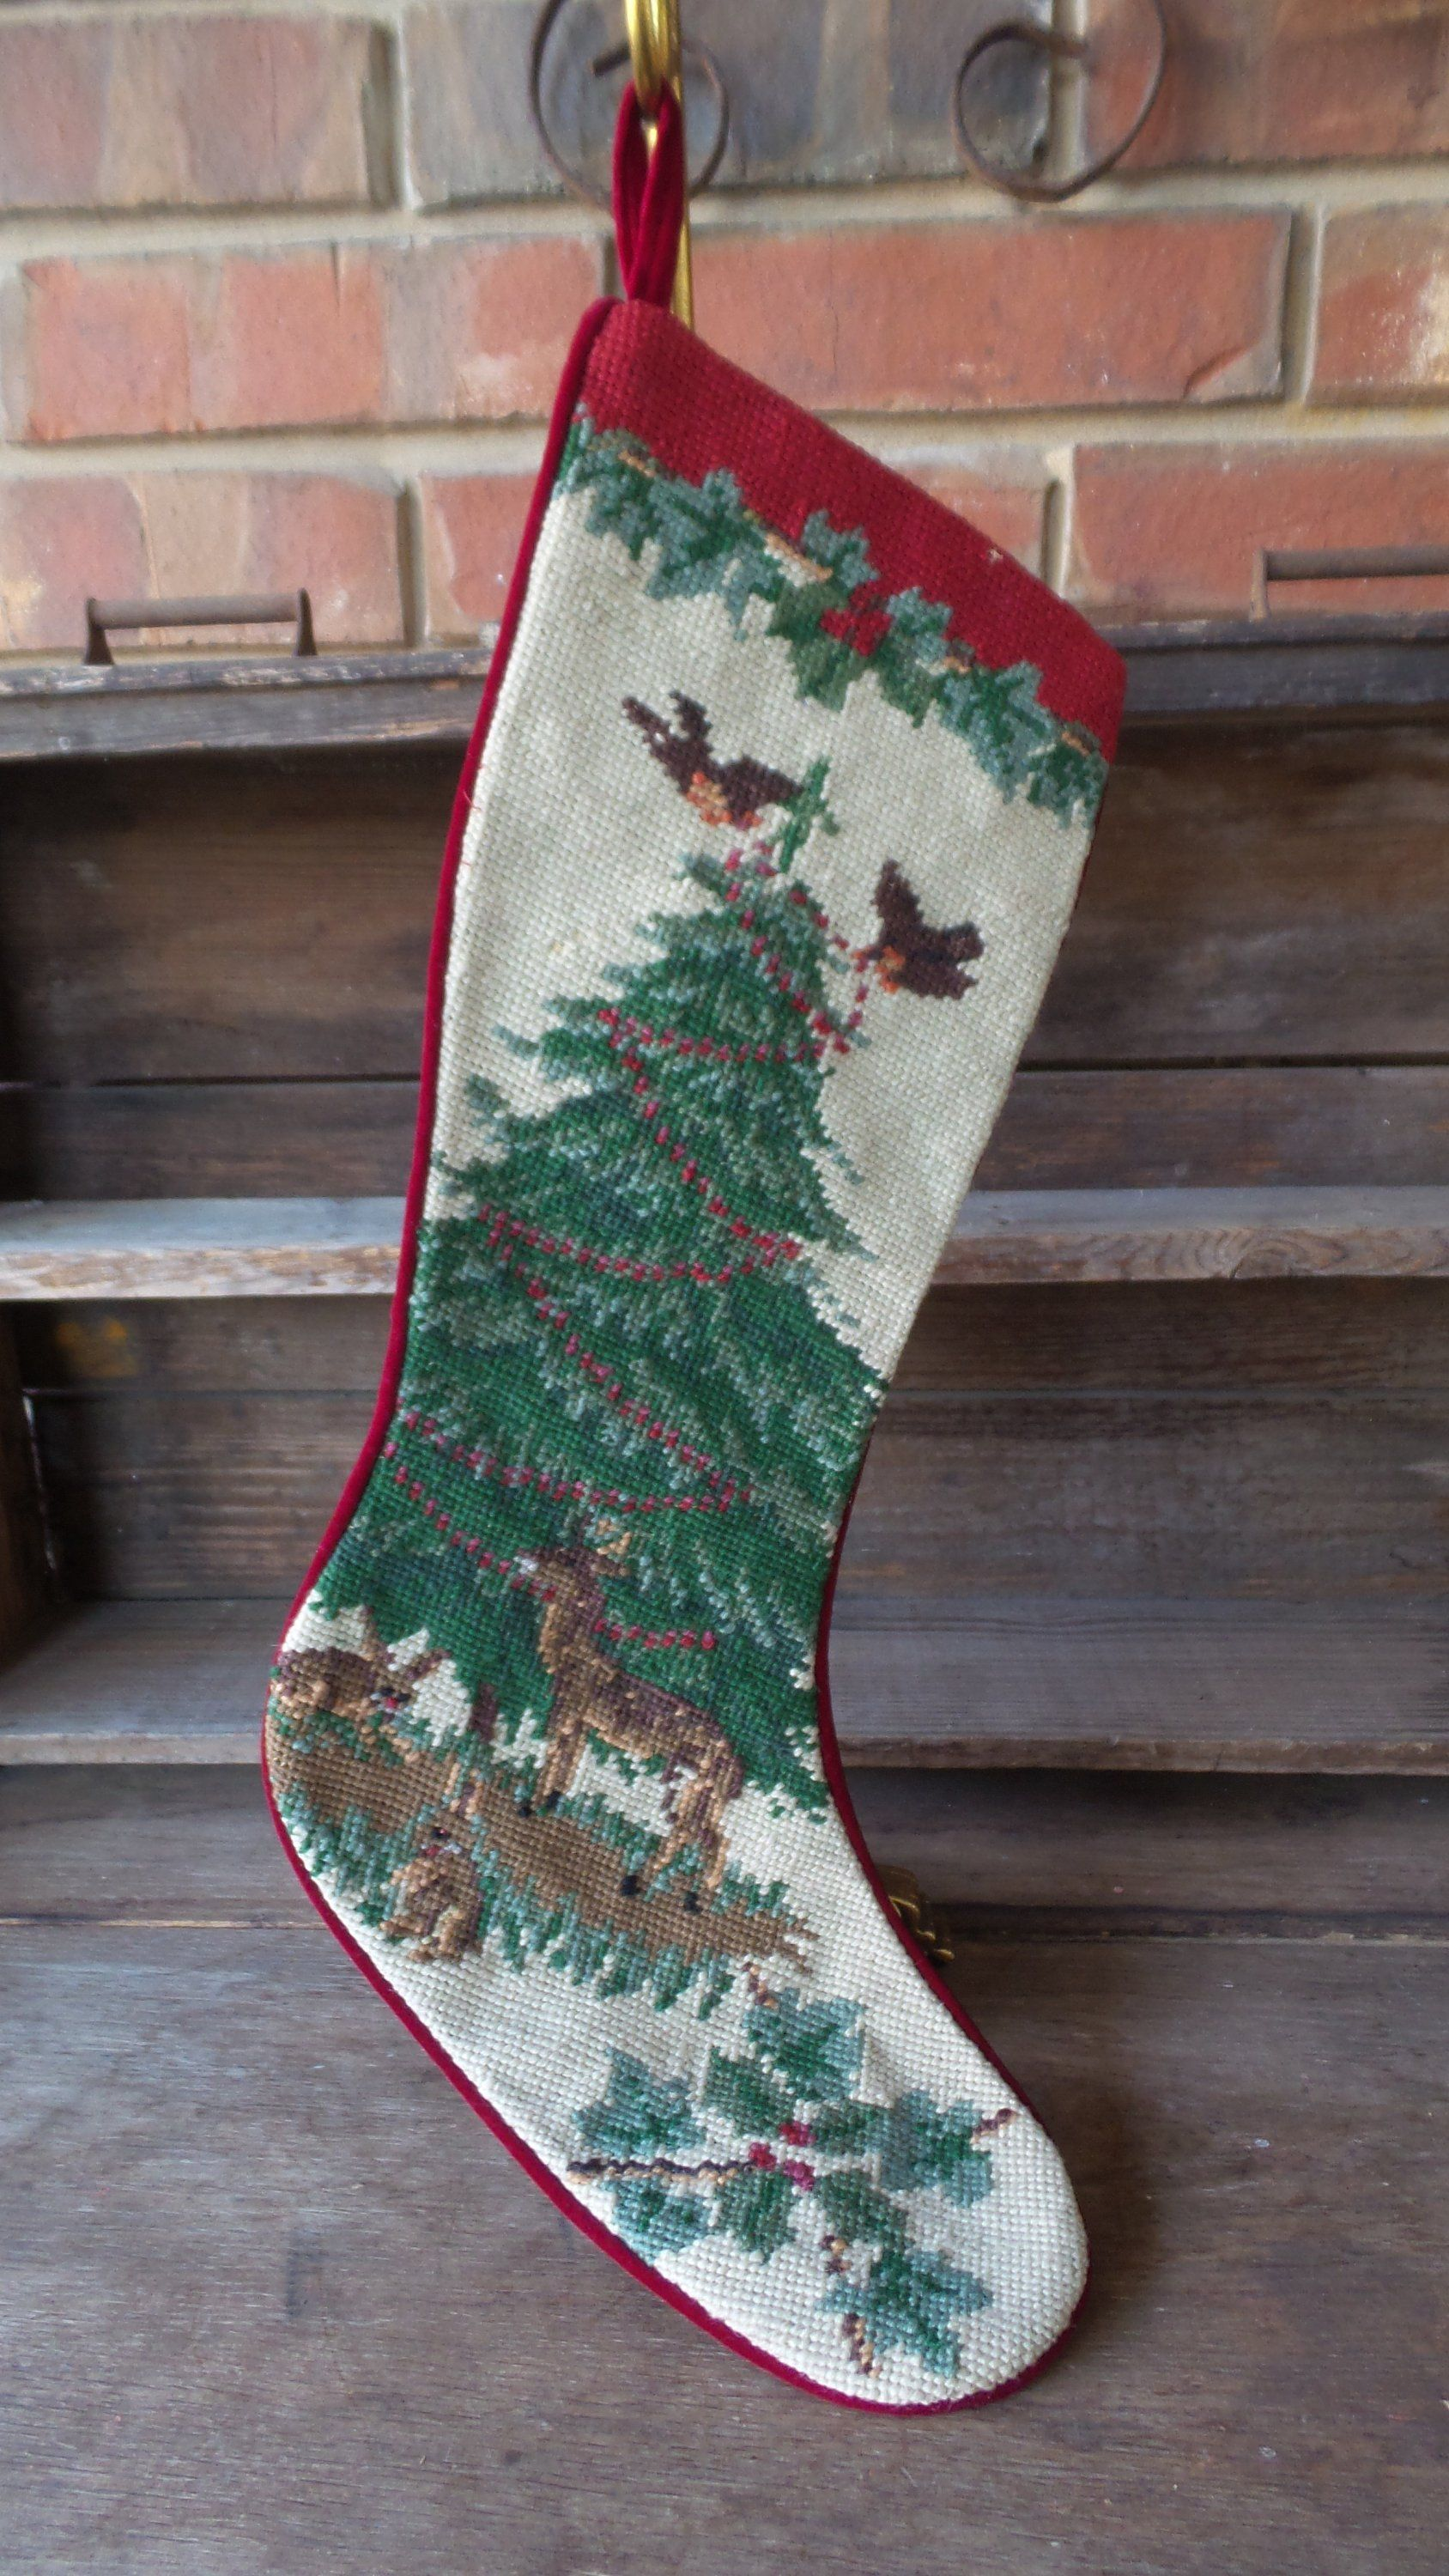 Vintage Needlepoint Christmas Stockings.Vintage Needlepoint Christmas Tree Stocking Deer Stocking